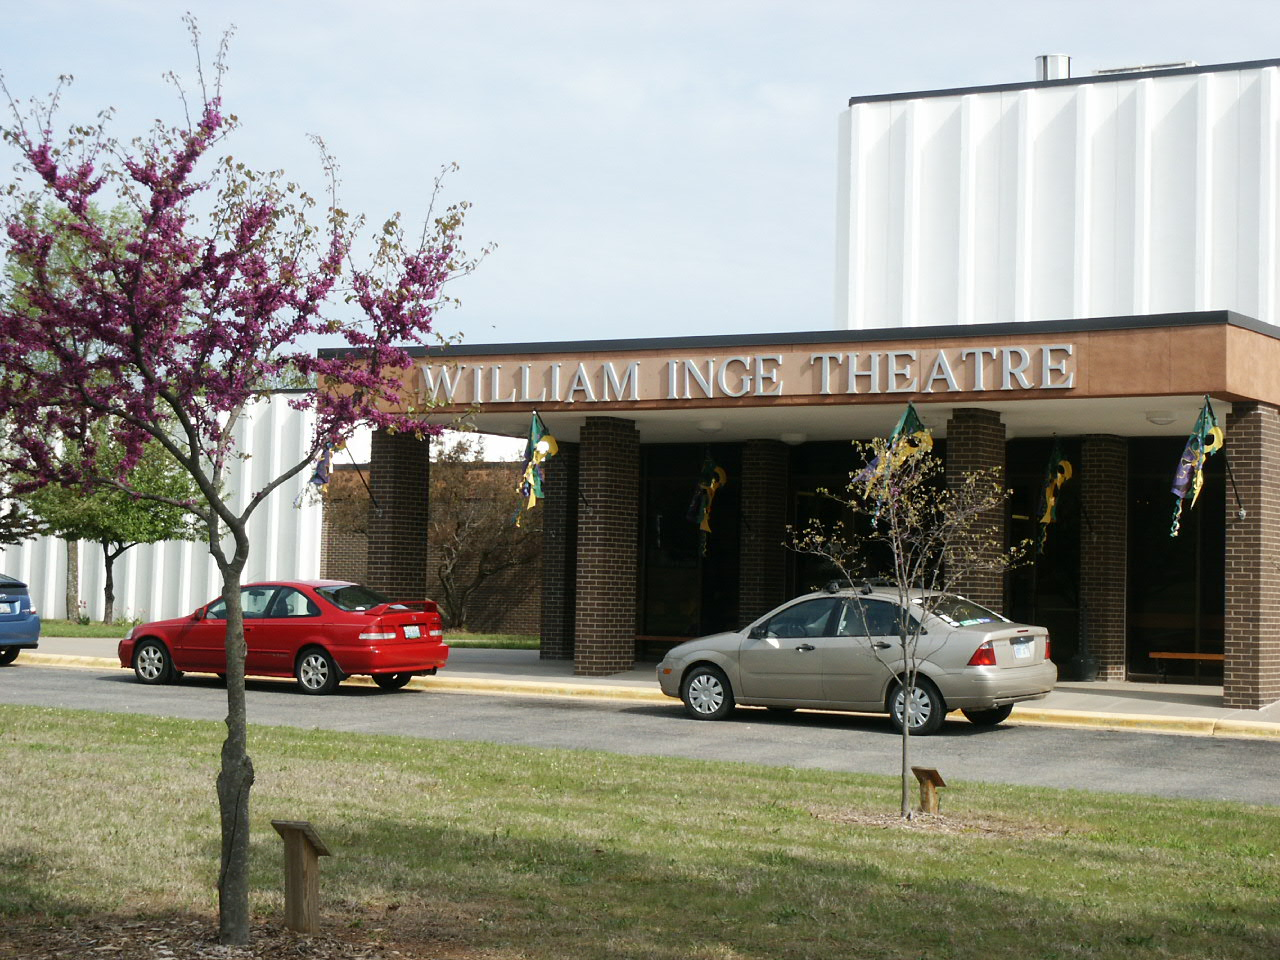 recent current and forthcoming miller events outside the william inge theatre they have planted a tree for each past honoree of the william inge festival achievement award who has passed on